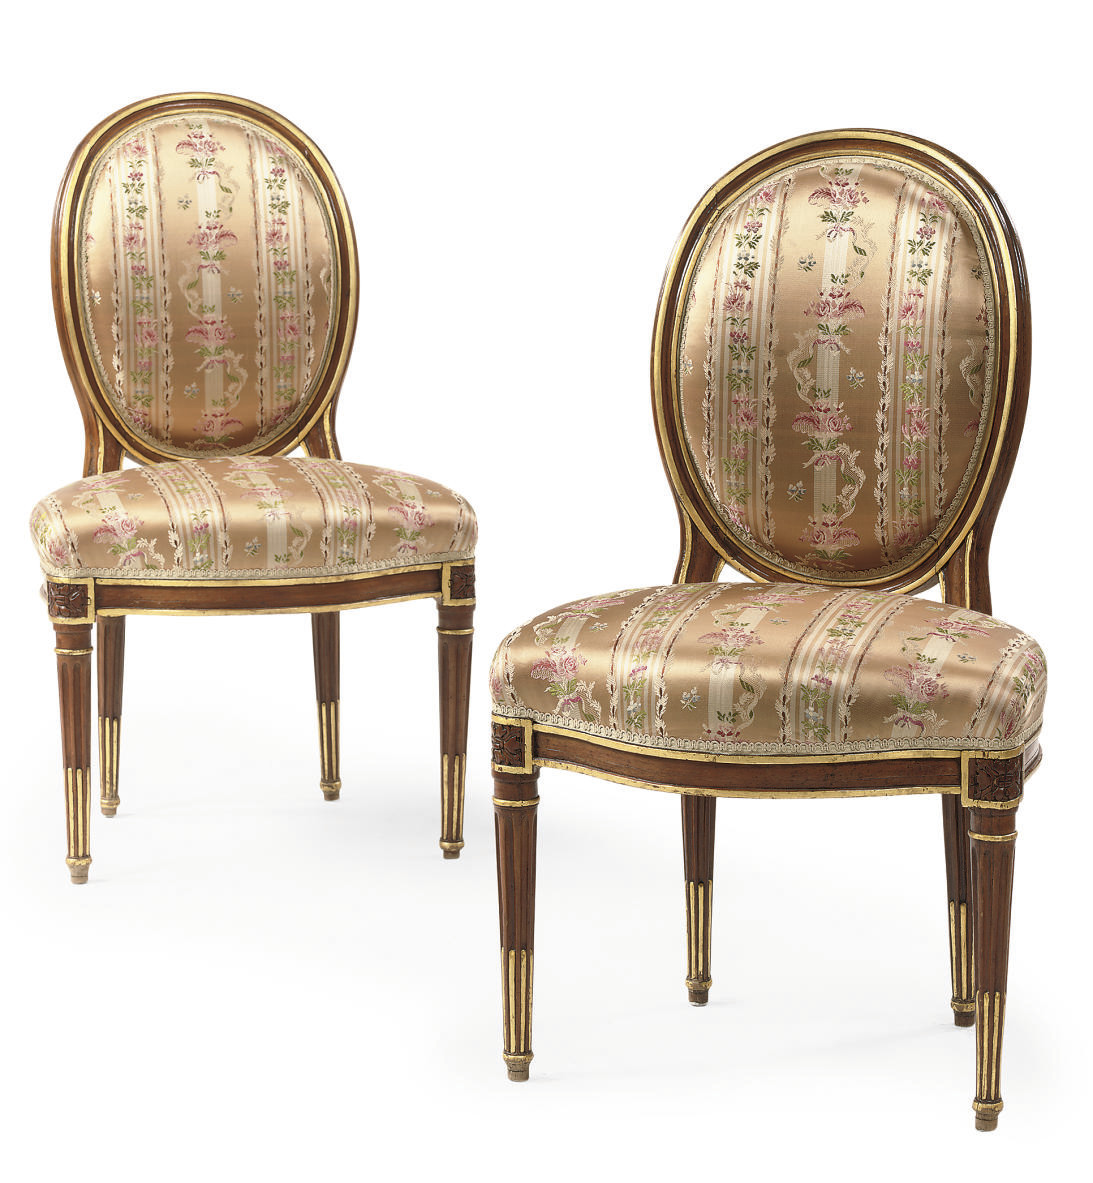 A PAIR OF LOUIS XVI PARCEL-GIL